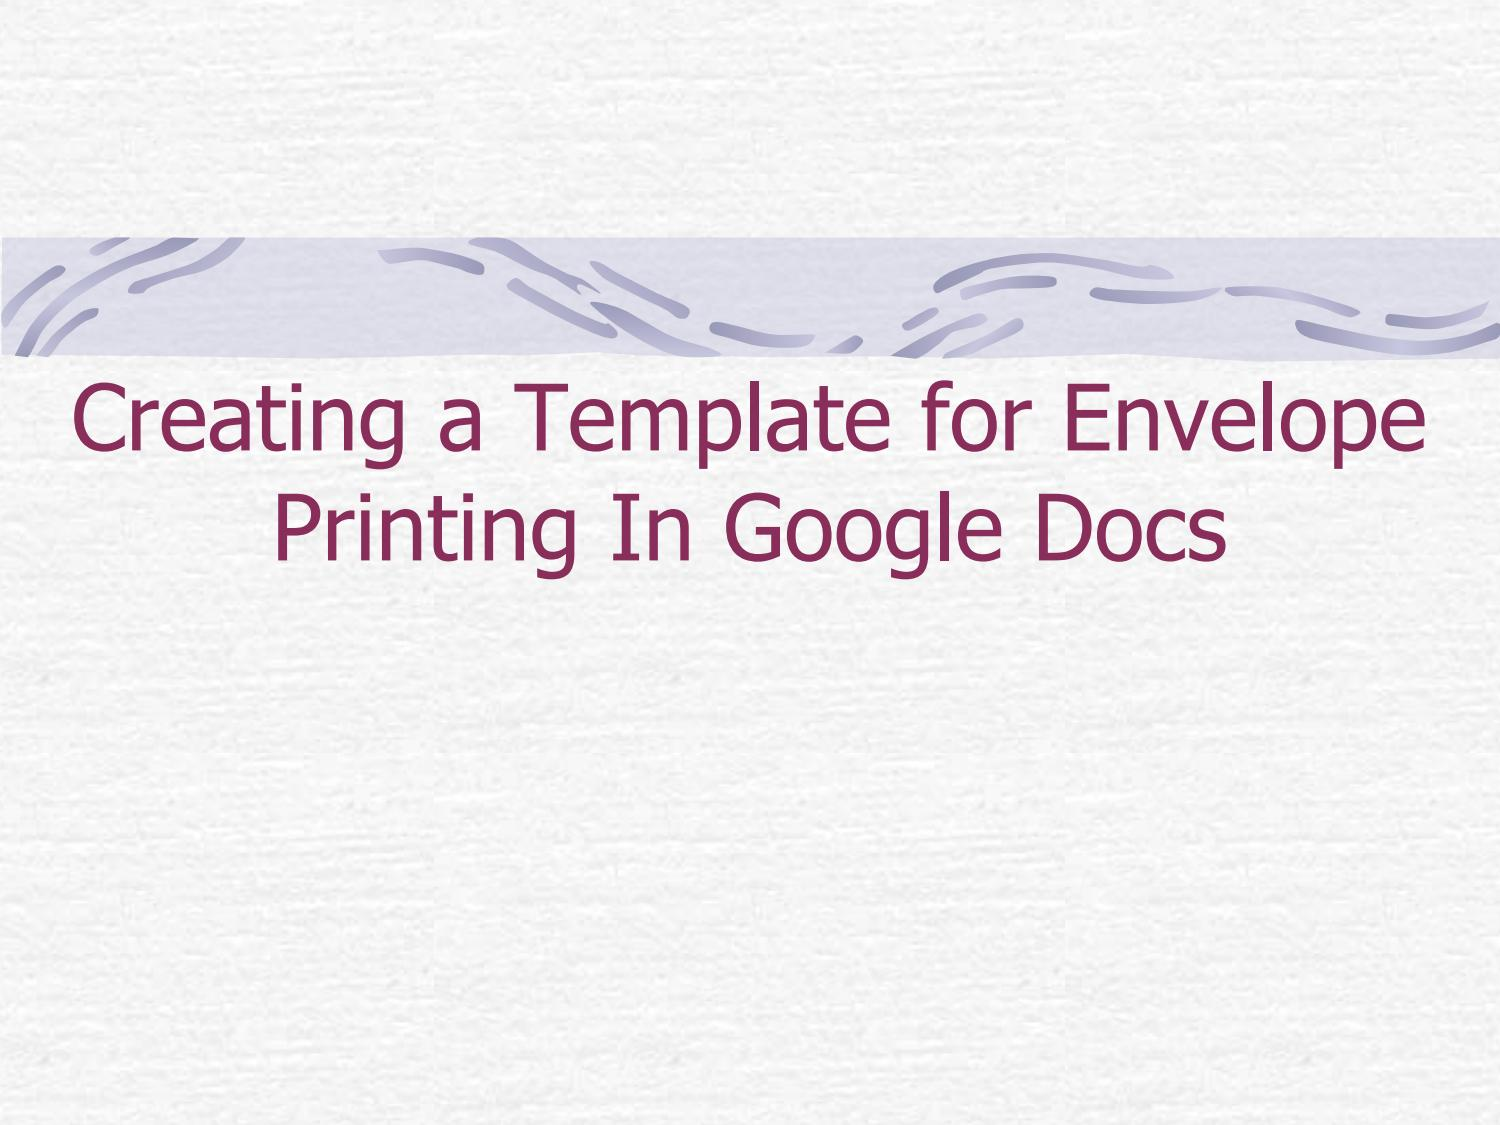 Envelope Printing Template Google Docs